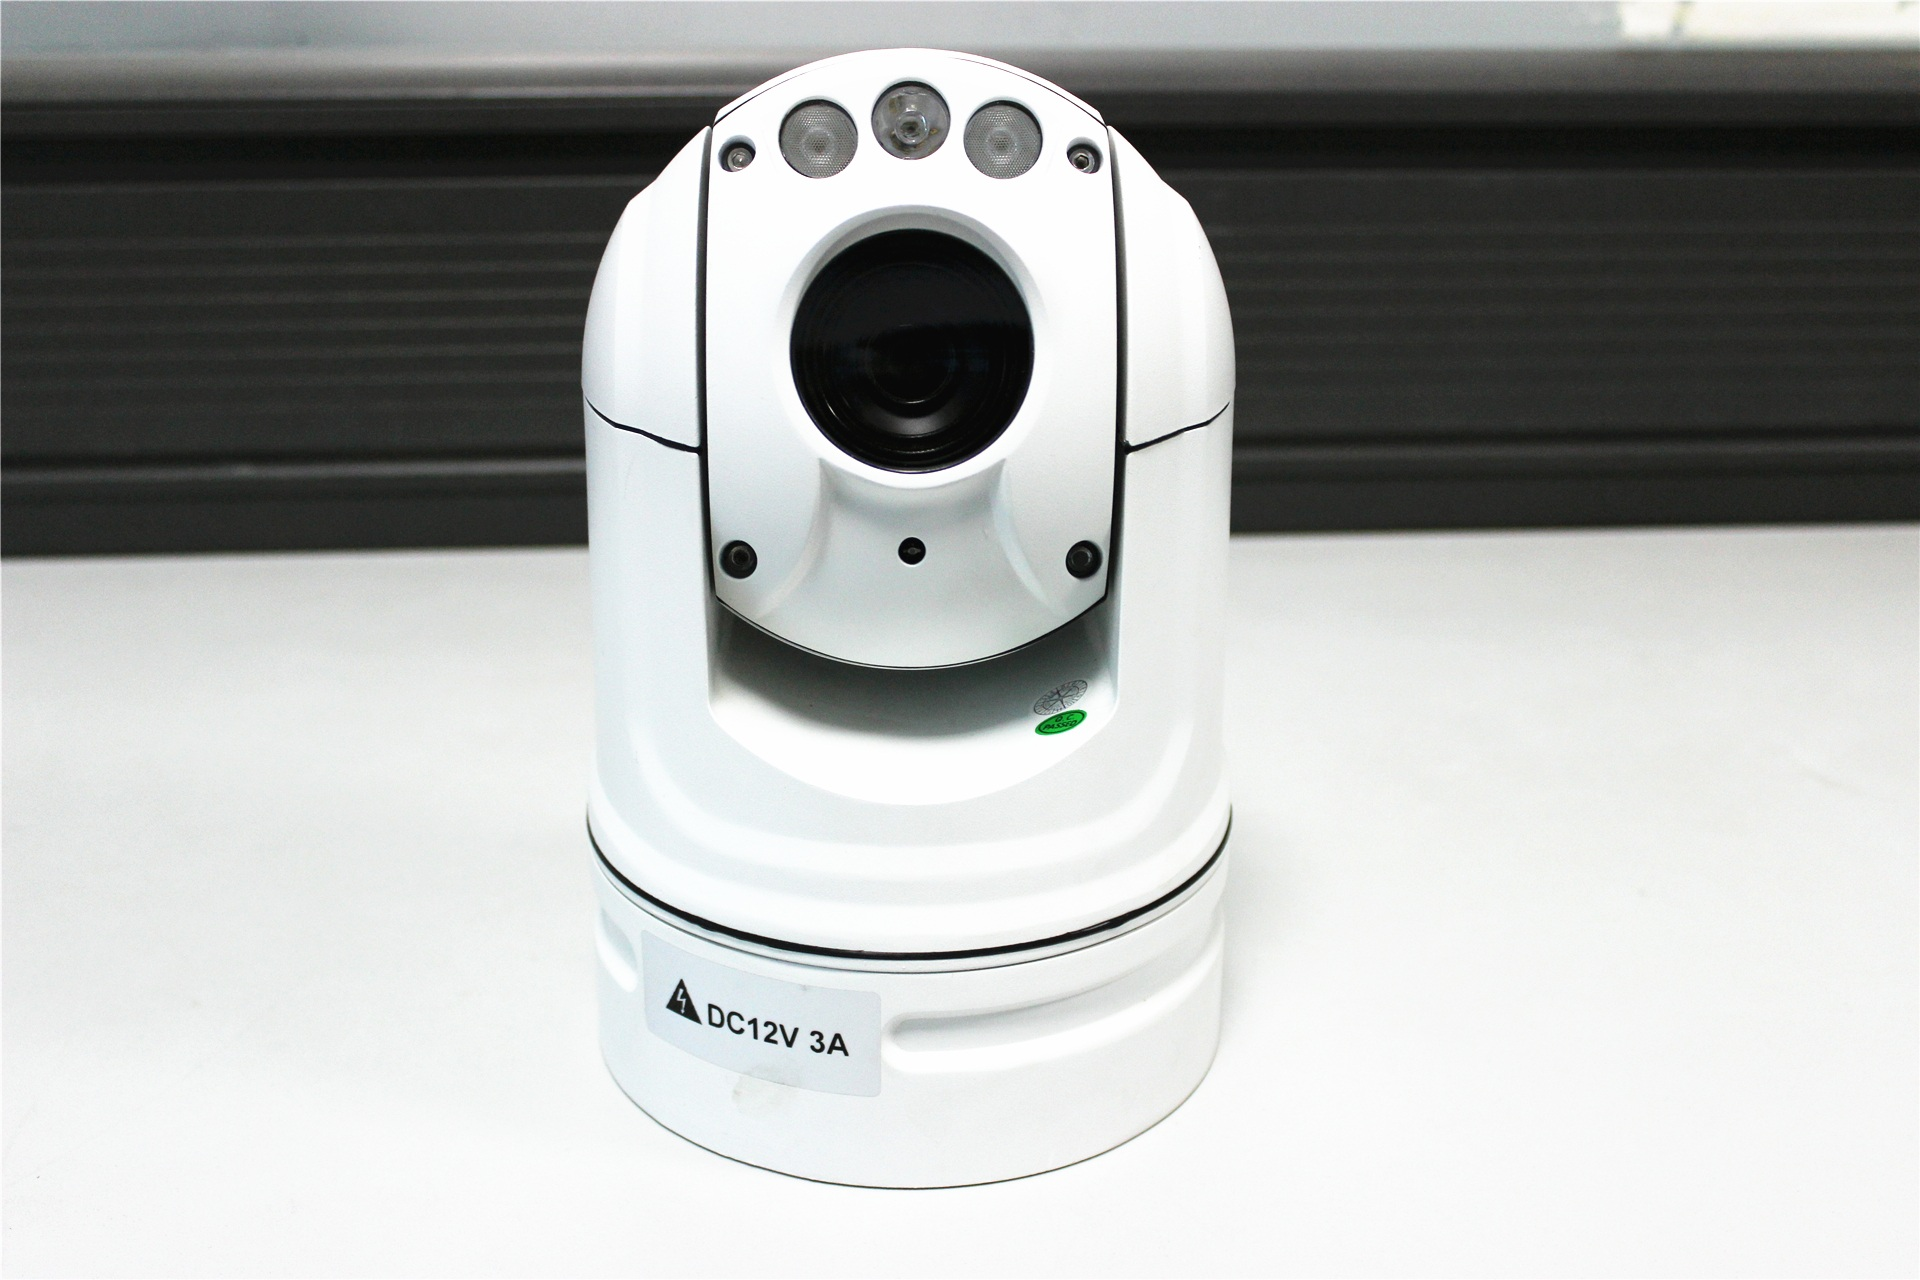 Caméras - Camera-video-surveillance-01.jpg